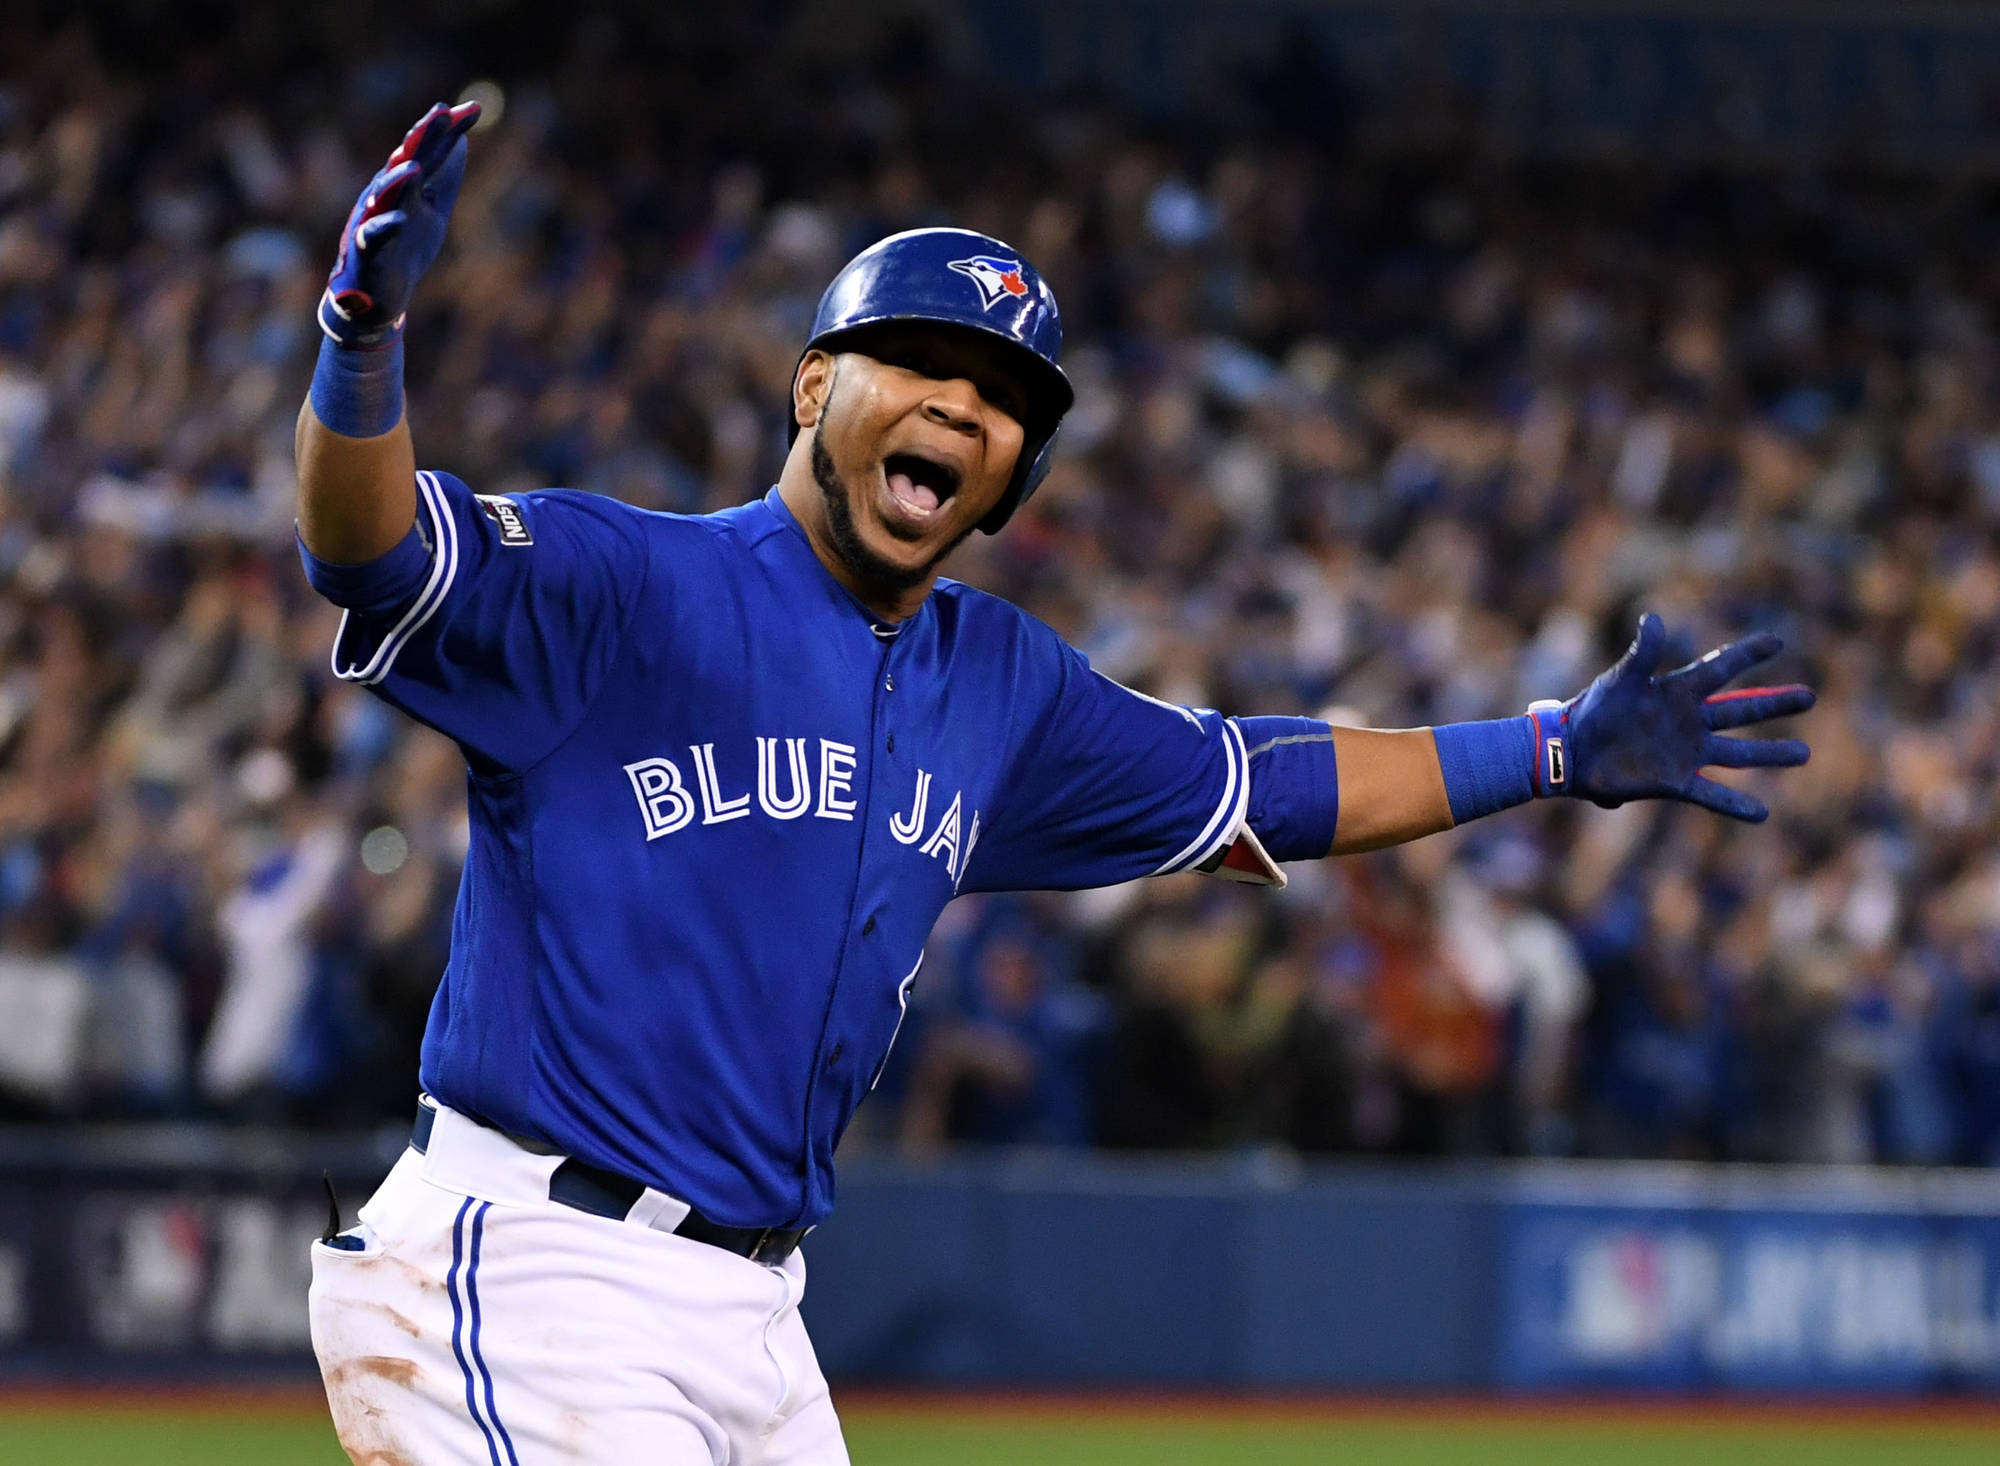 Blue Jays and Rangers Meet in ALDS